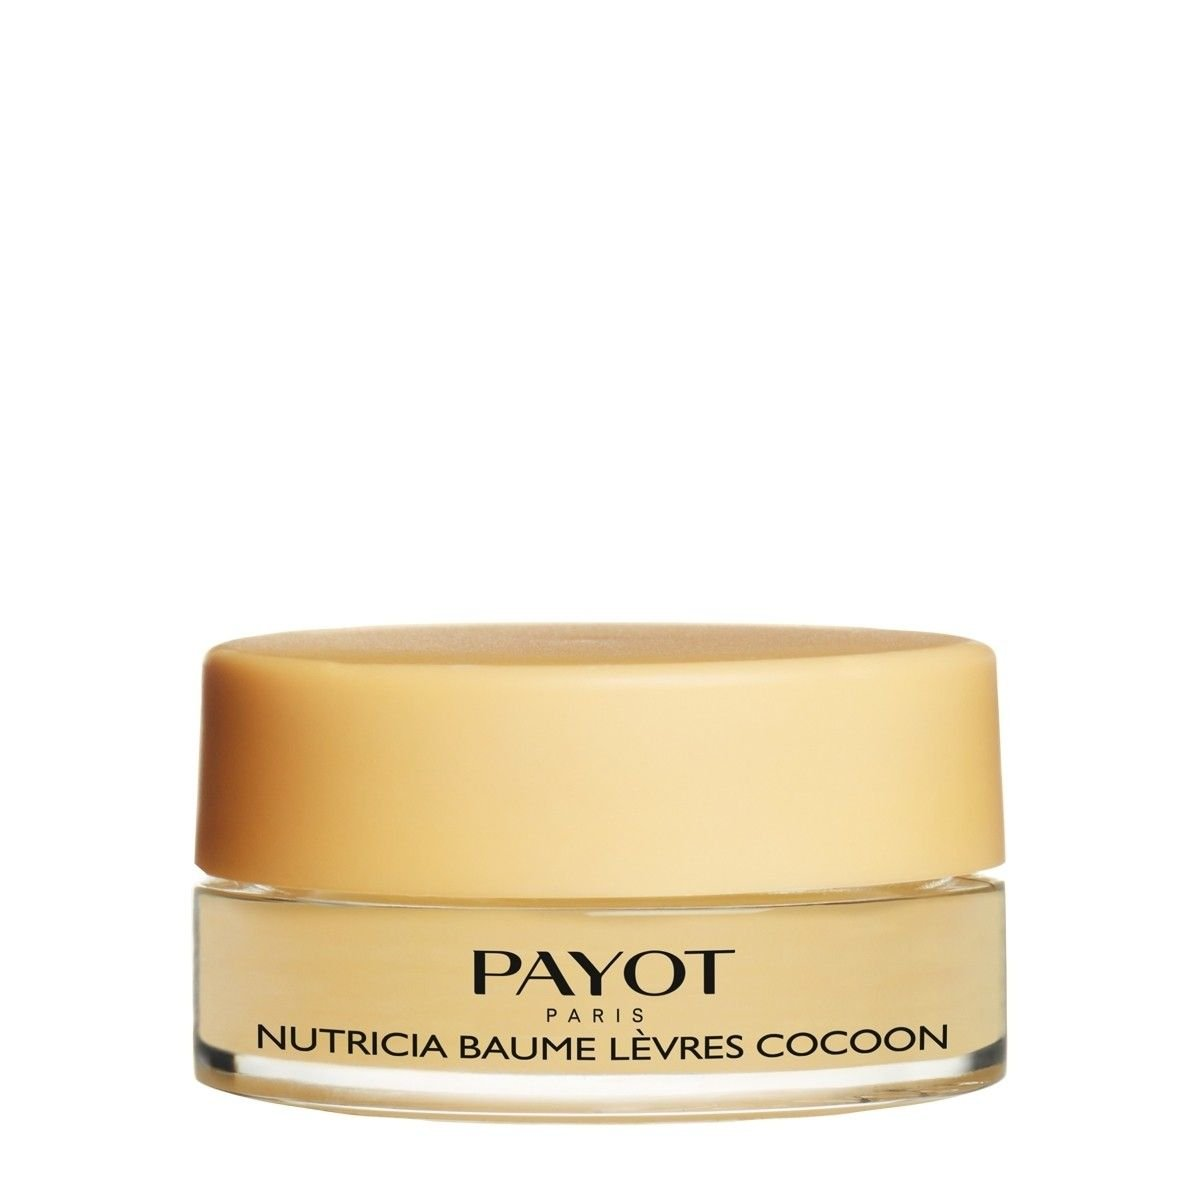 Payot Nutricia Baume Levres Cocoon 6 G - 10% korting code BEAUTY